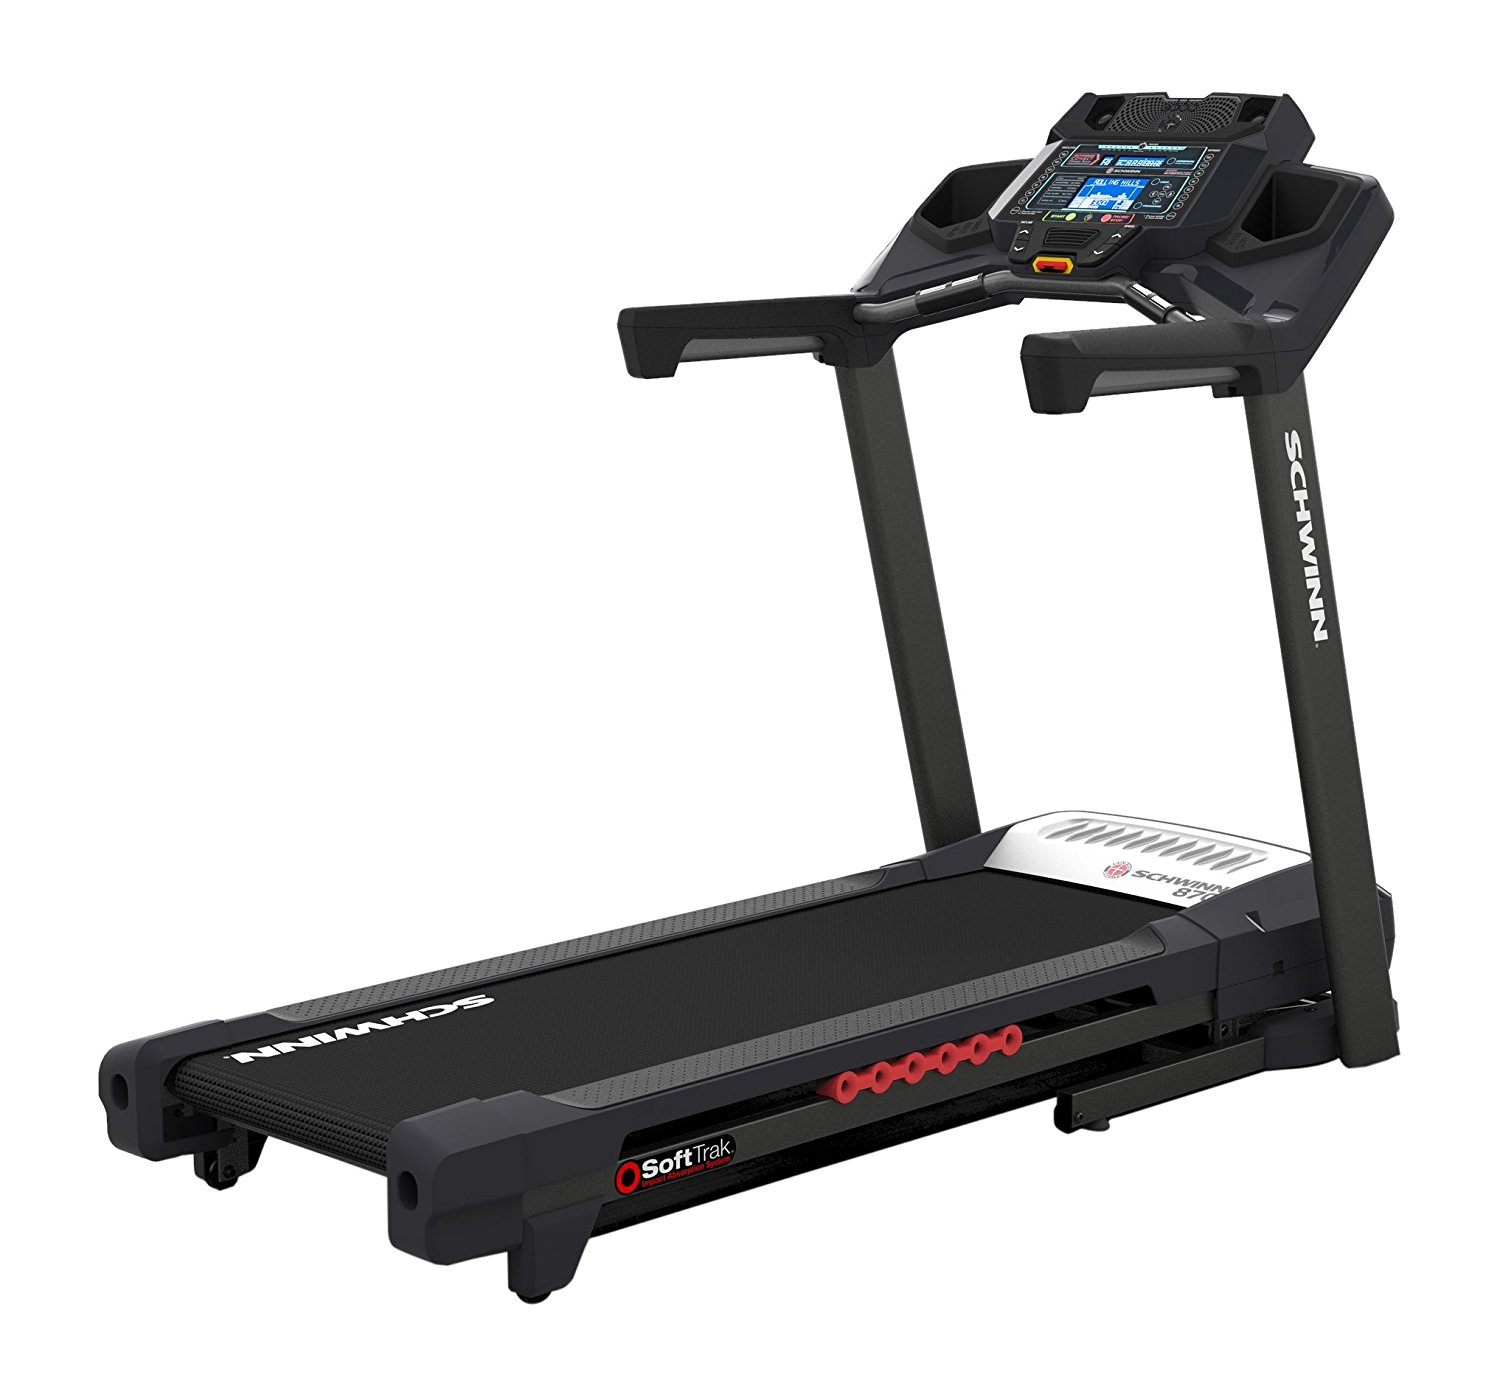 Schwinn 870 Treadmill - Advanced Model With Bluetooth